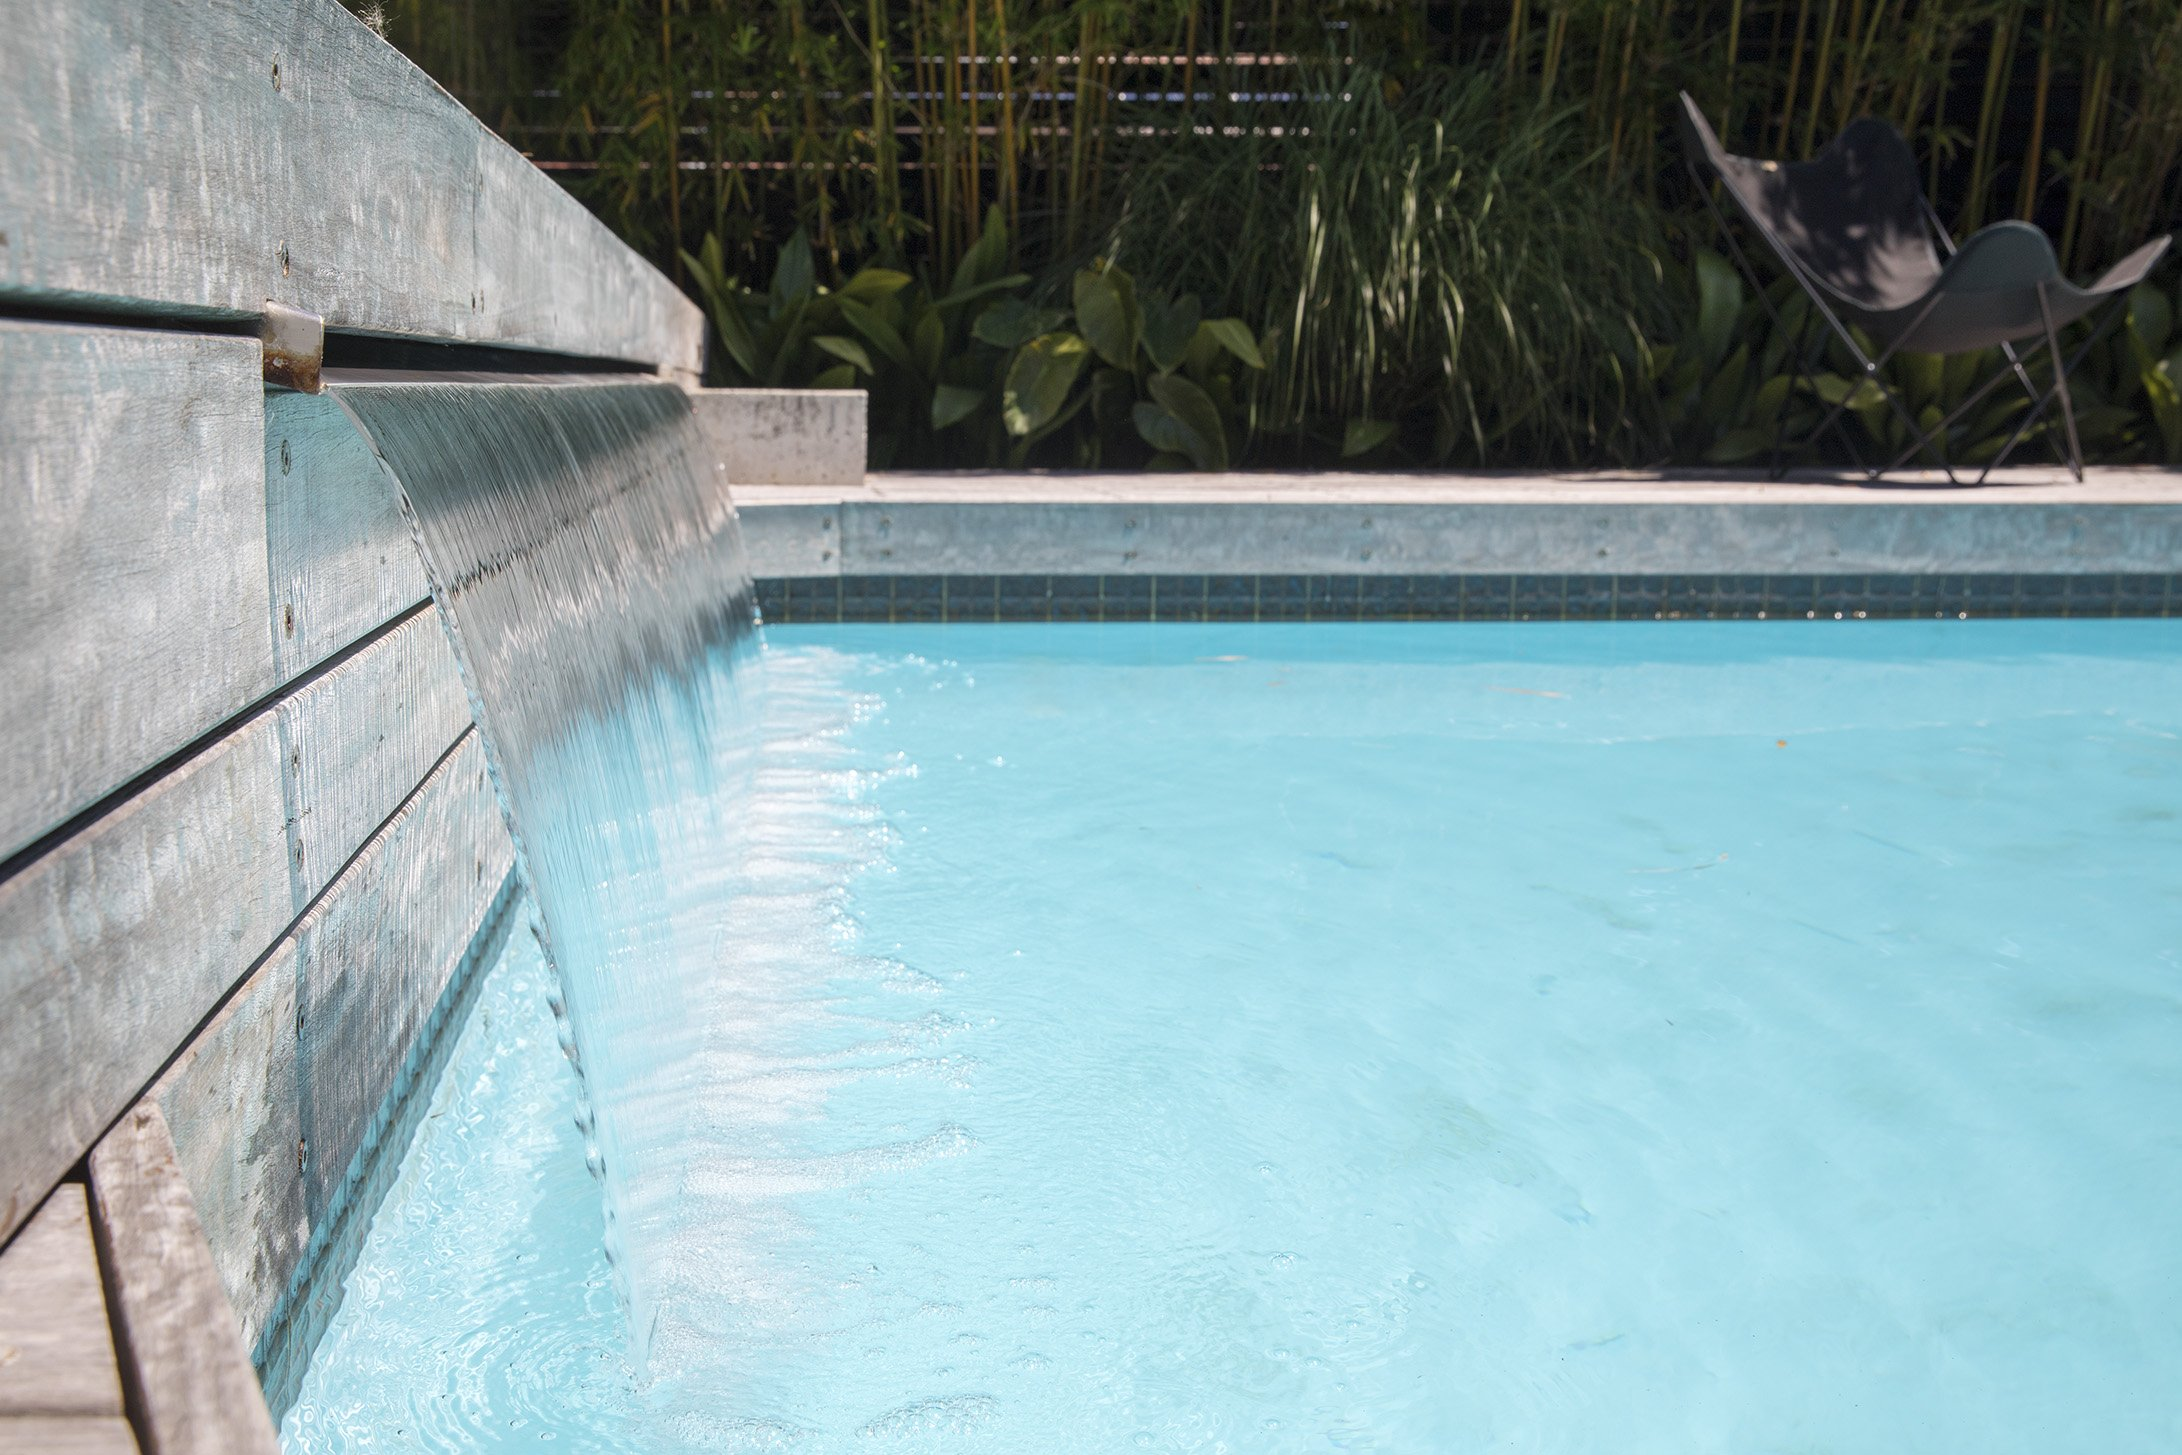 Water fountain coming out of above ground pool design